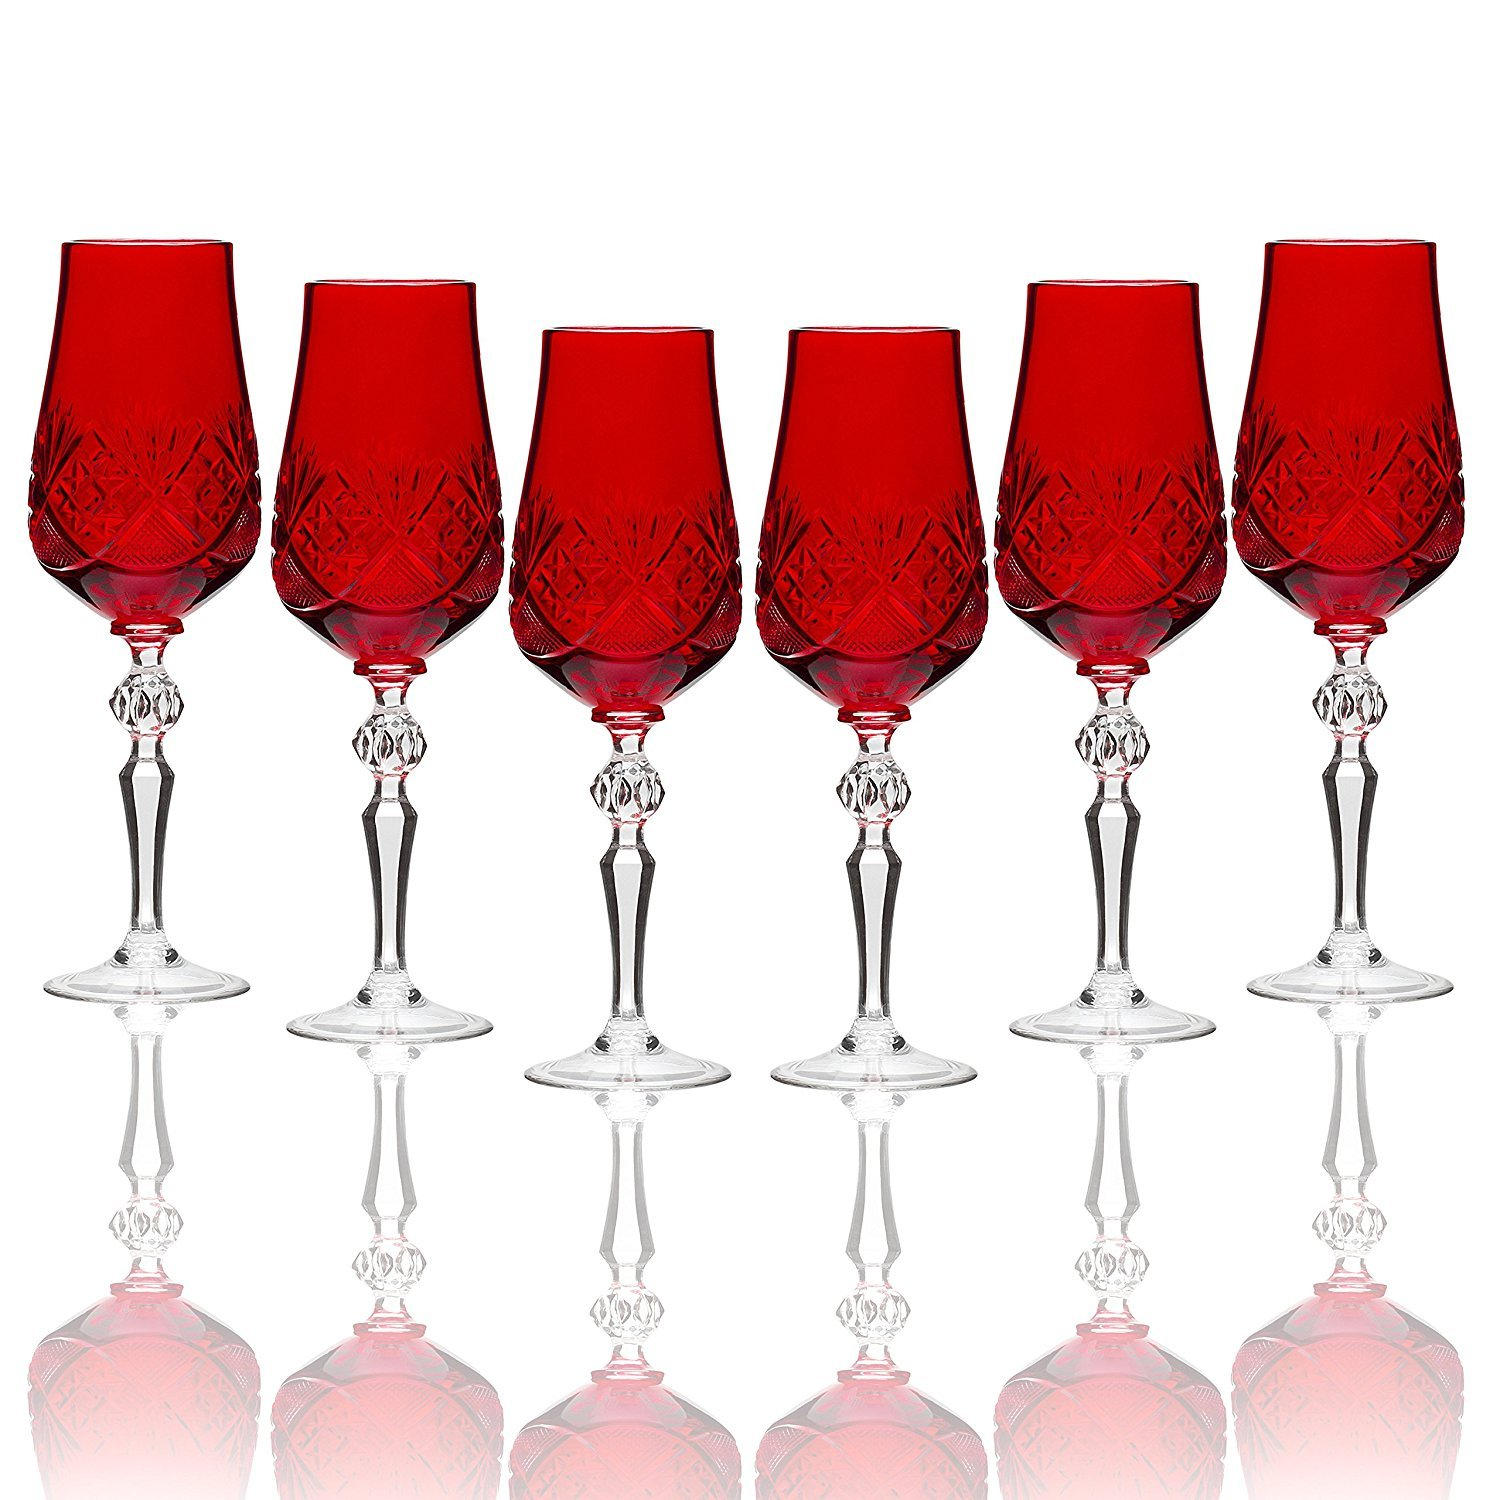 Red Handmade Russian Cut Crystal Stem Wine Glass Set of 6